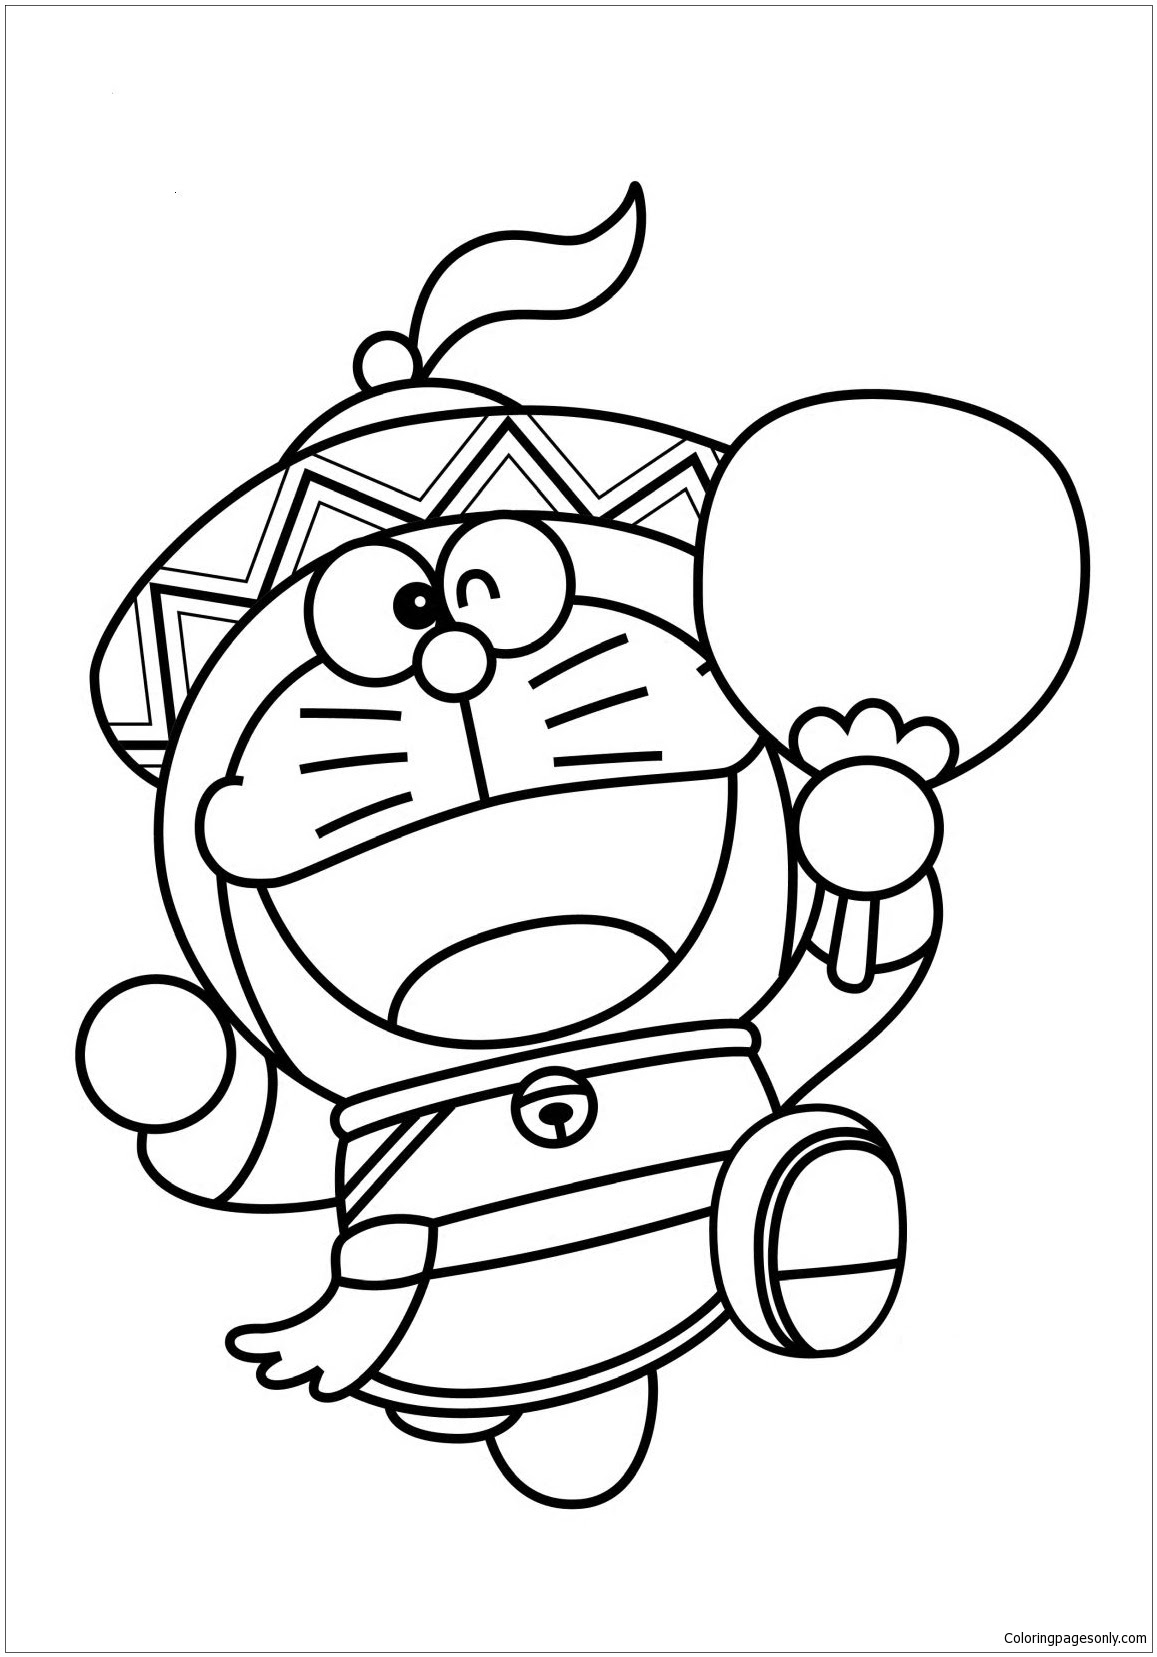 Doraemon As Chinese Coloring Page Free Coloring Pages Online